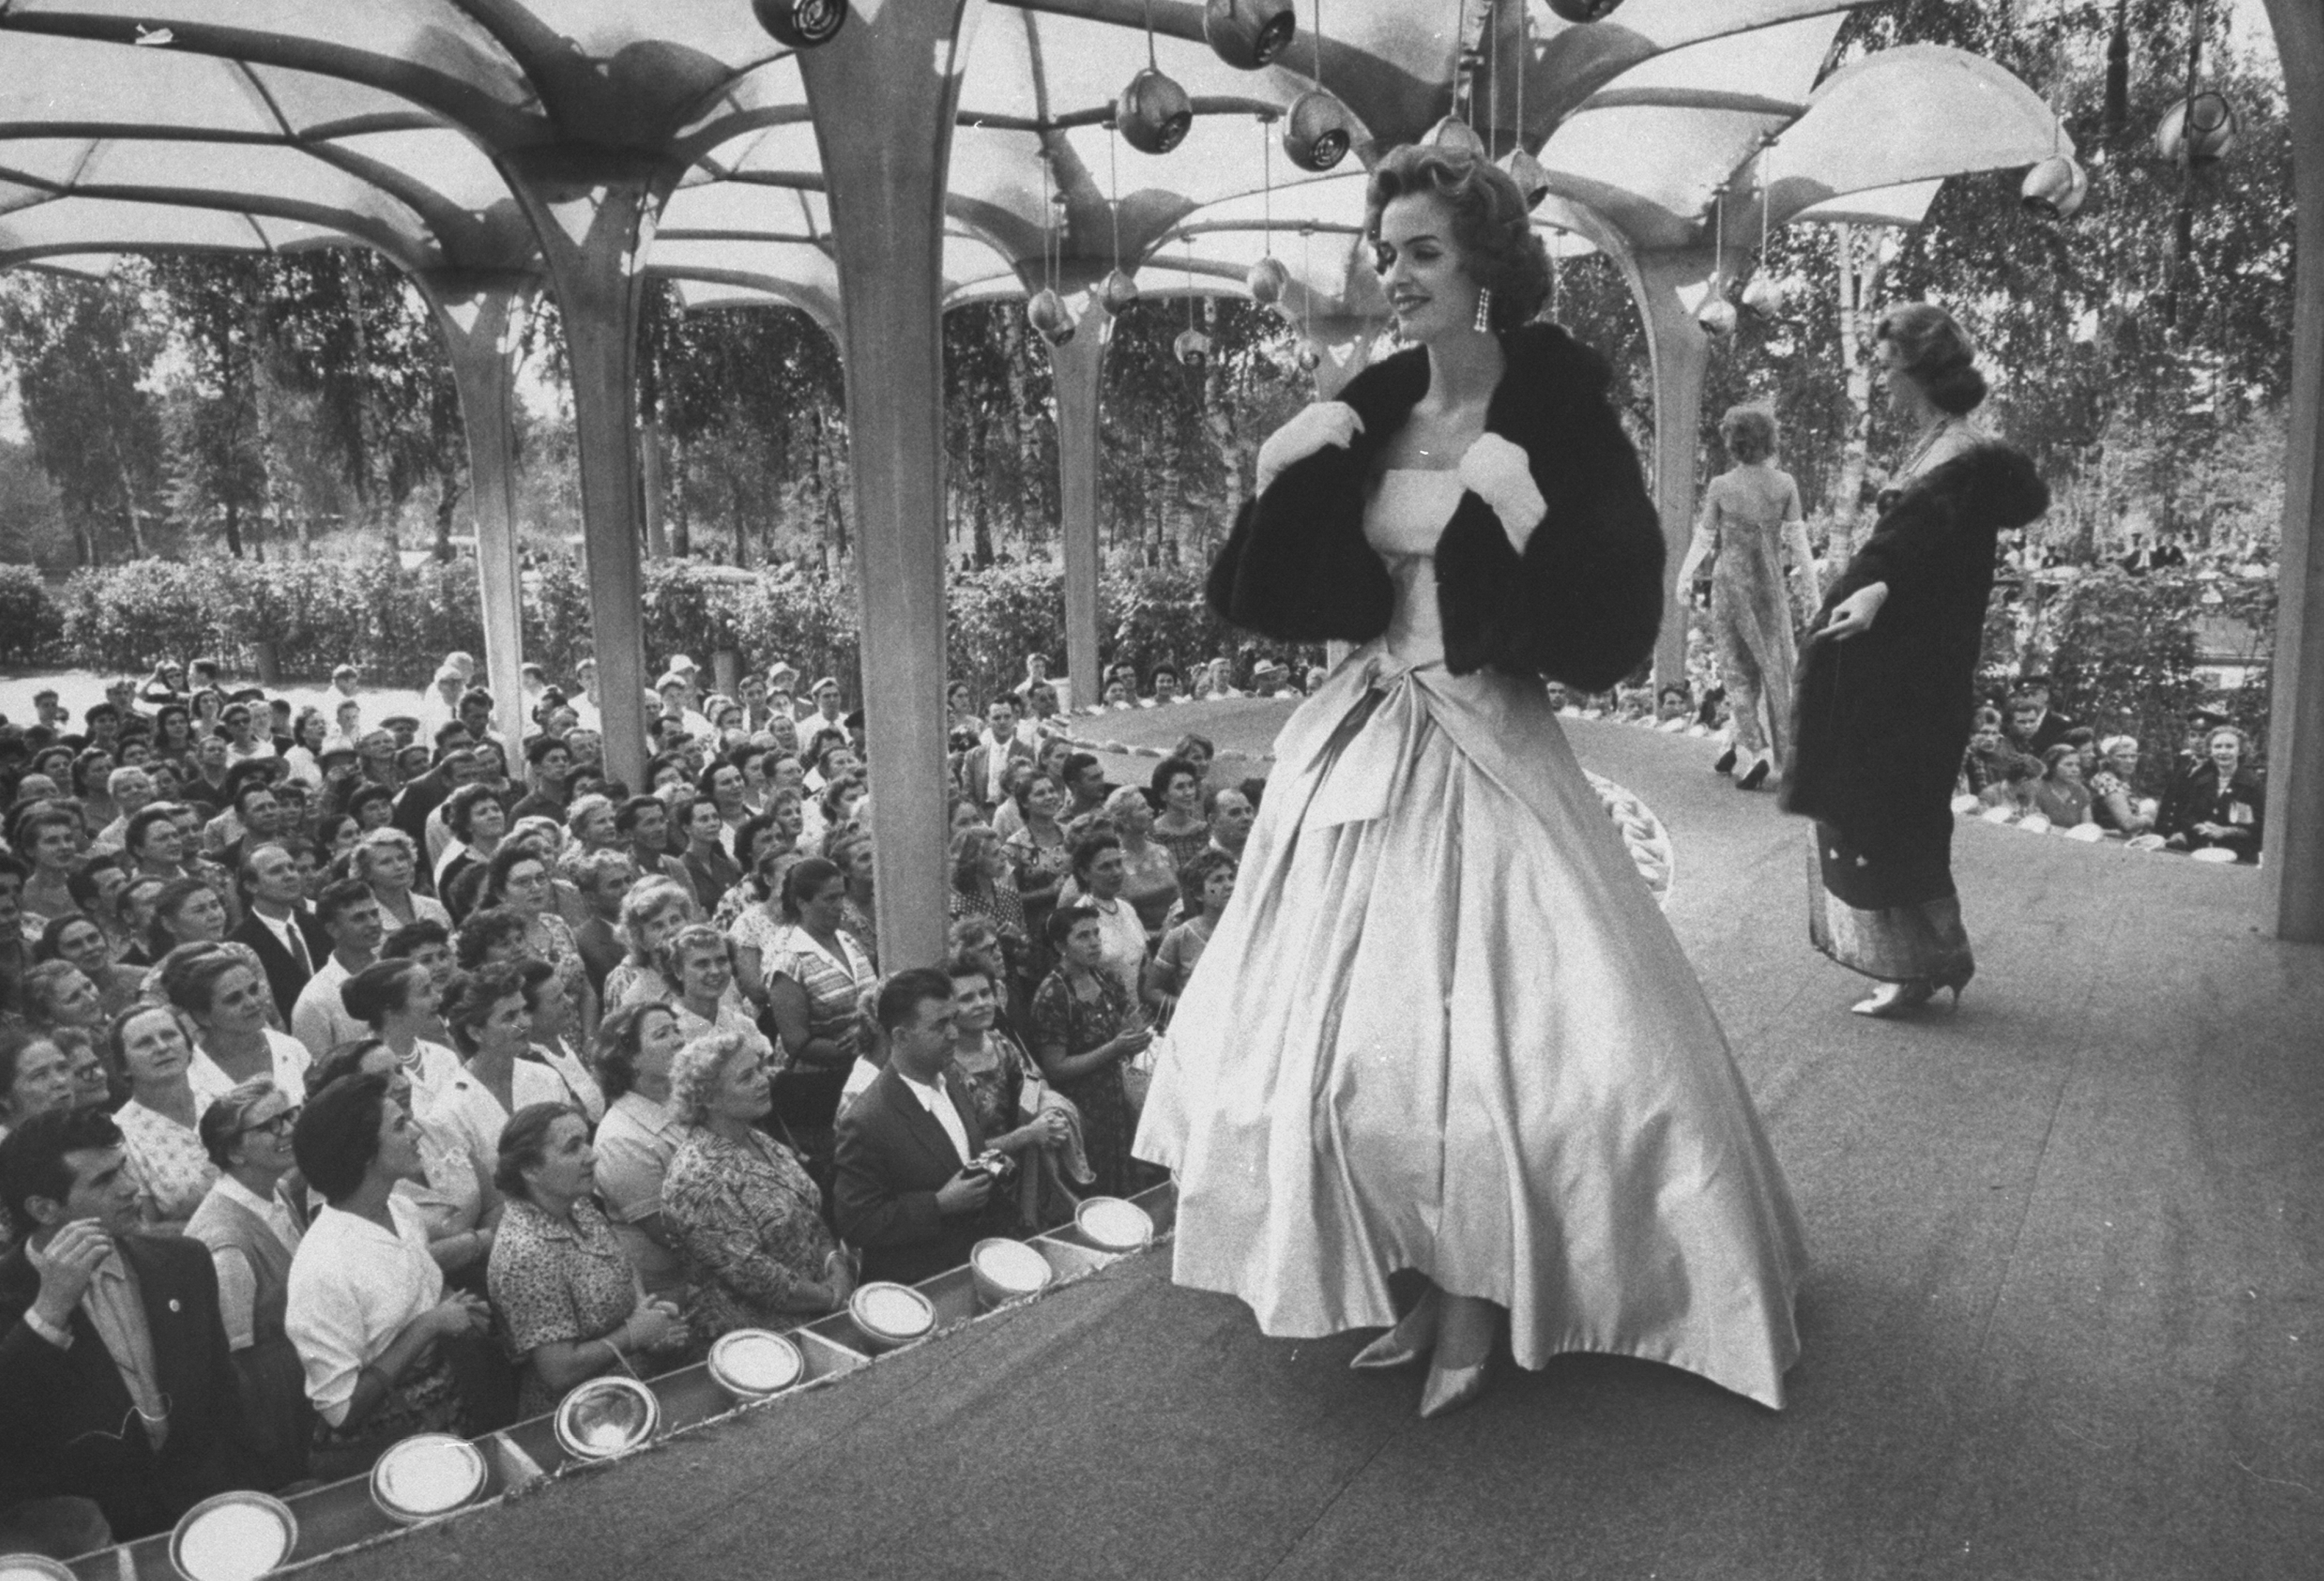 A woman models a gown at a special showing of American fashions in Moscow, 1959